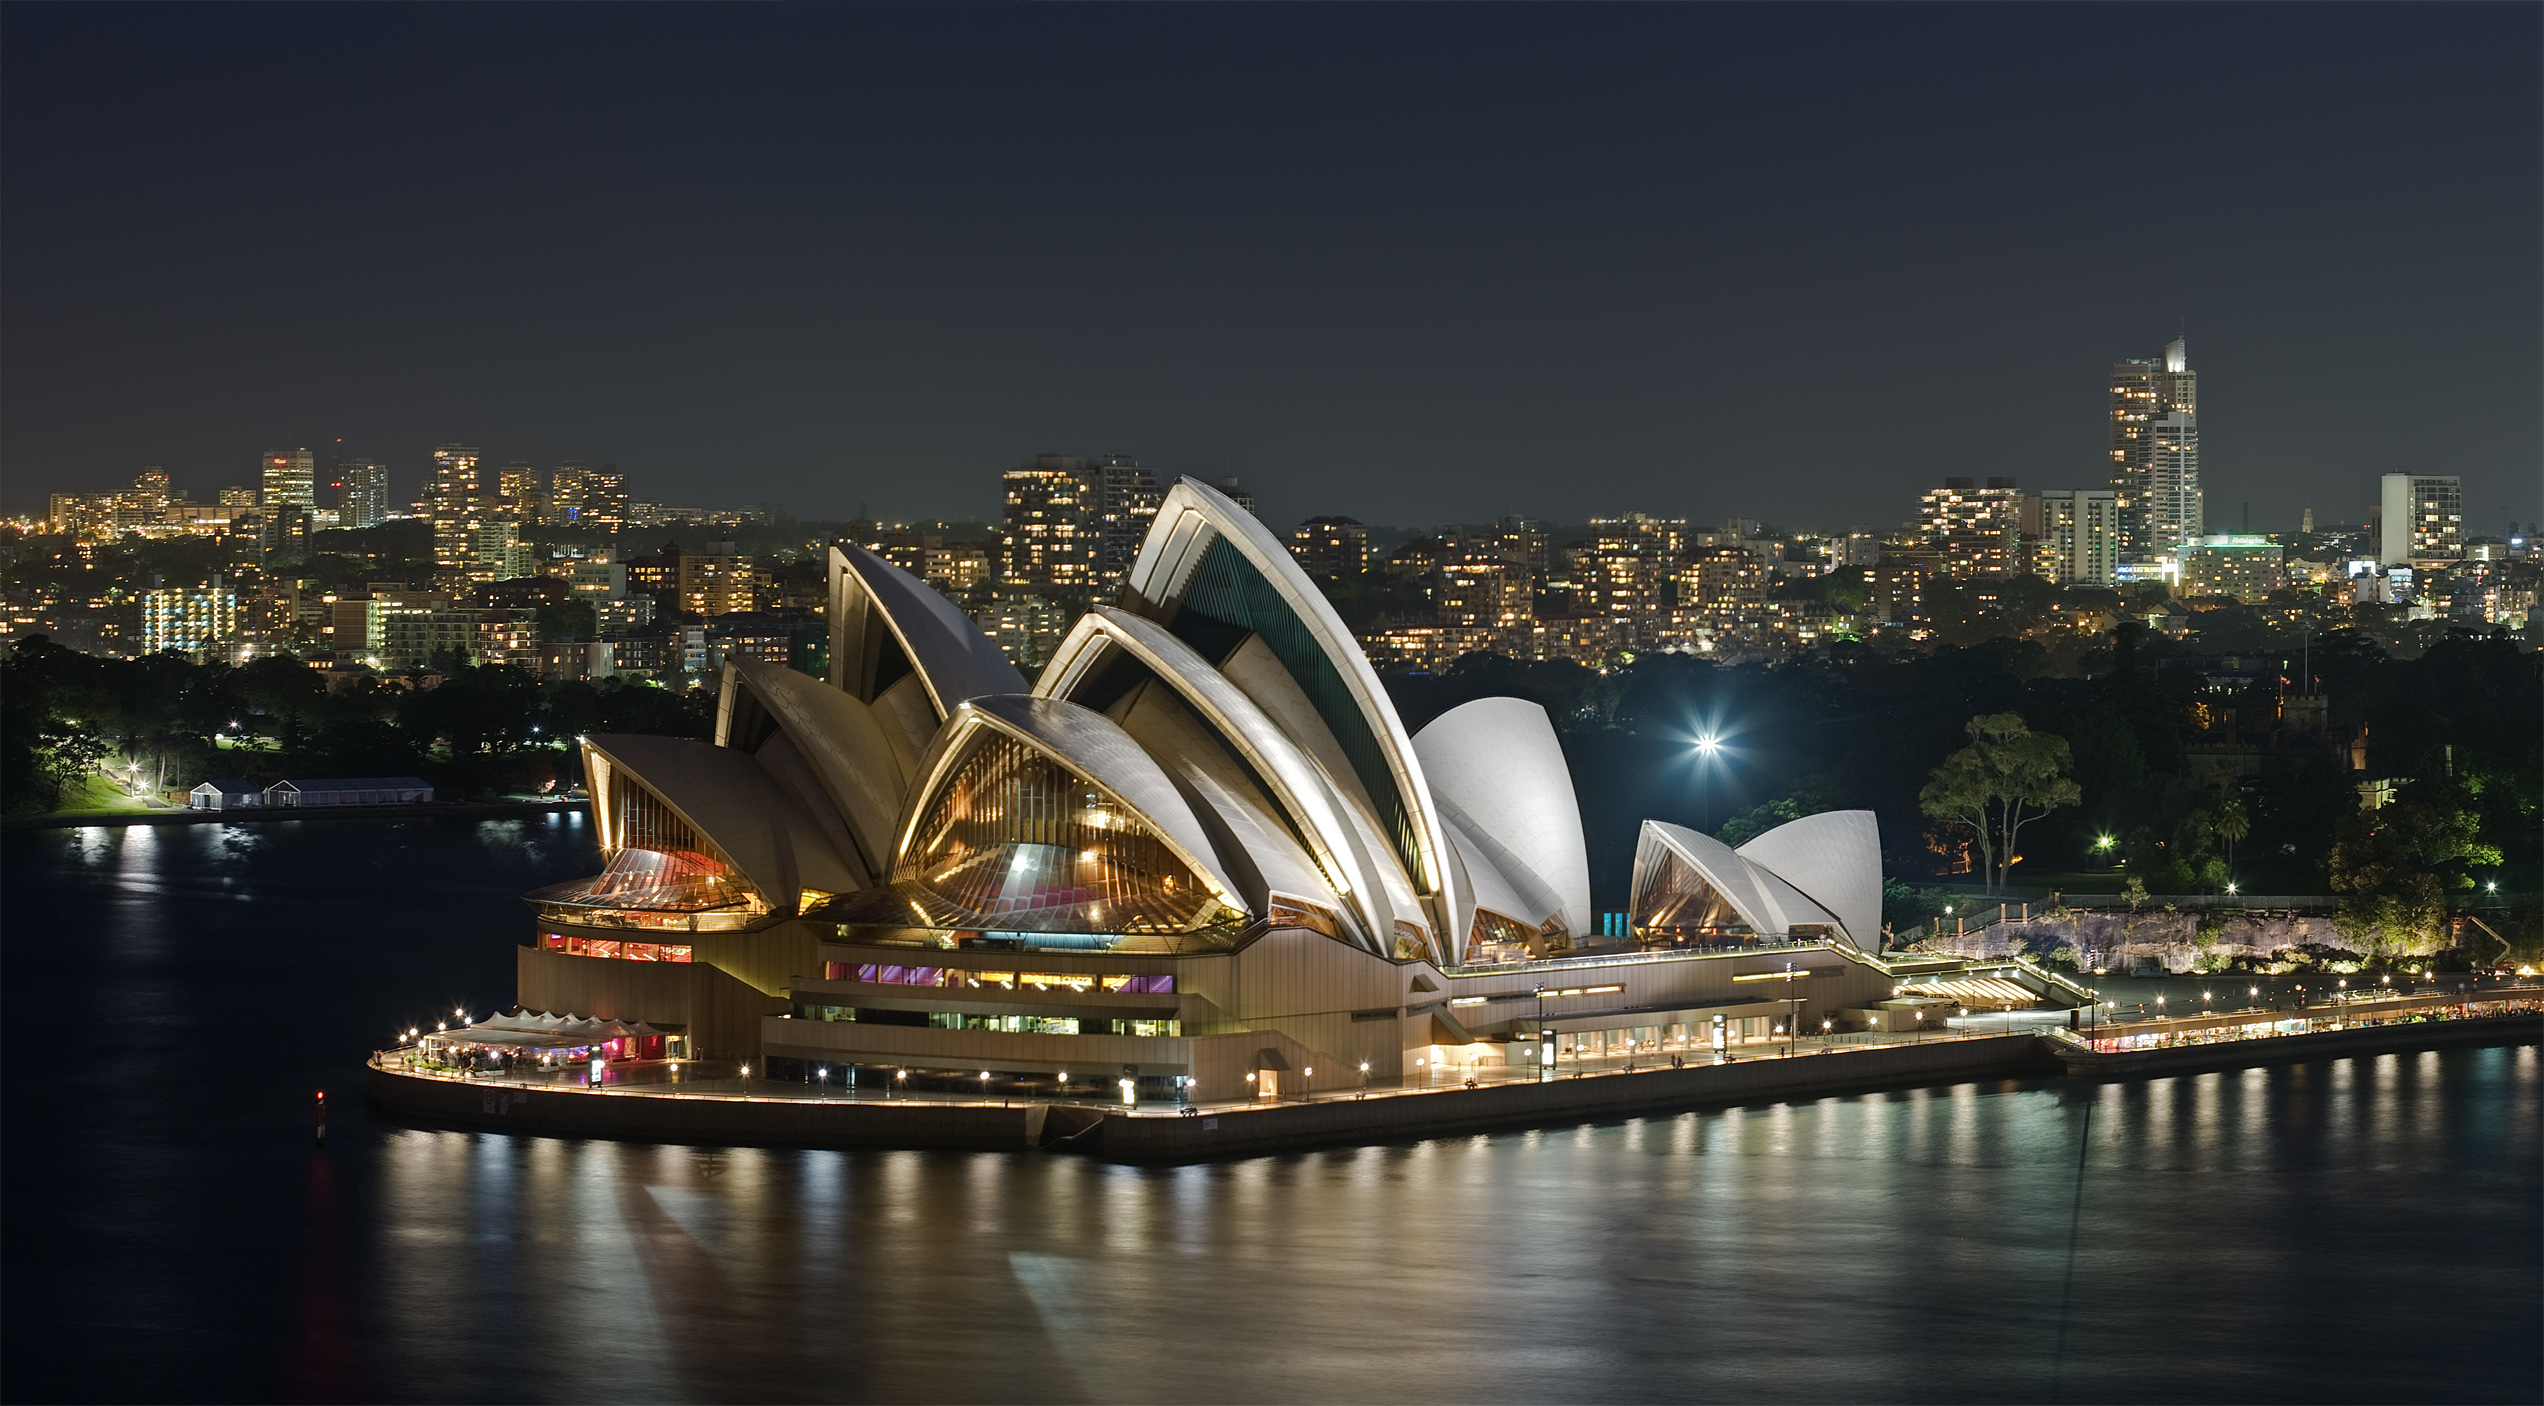 Sydney Opera House at night By Diliff (Own work) [CC-BY-SA-3.0 (https://creativecommons.org/licenses/by-sa/3.0) or GFDL (https://www.gnu.org/copyleft/fdl.html)], via Wikimedia Commons